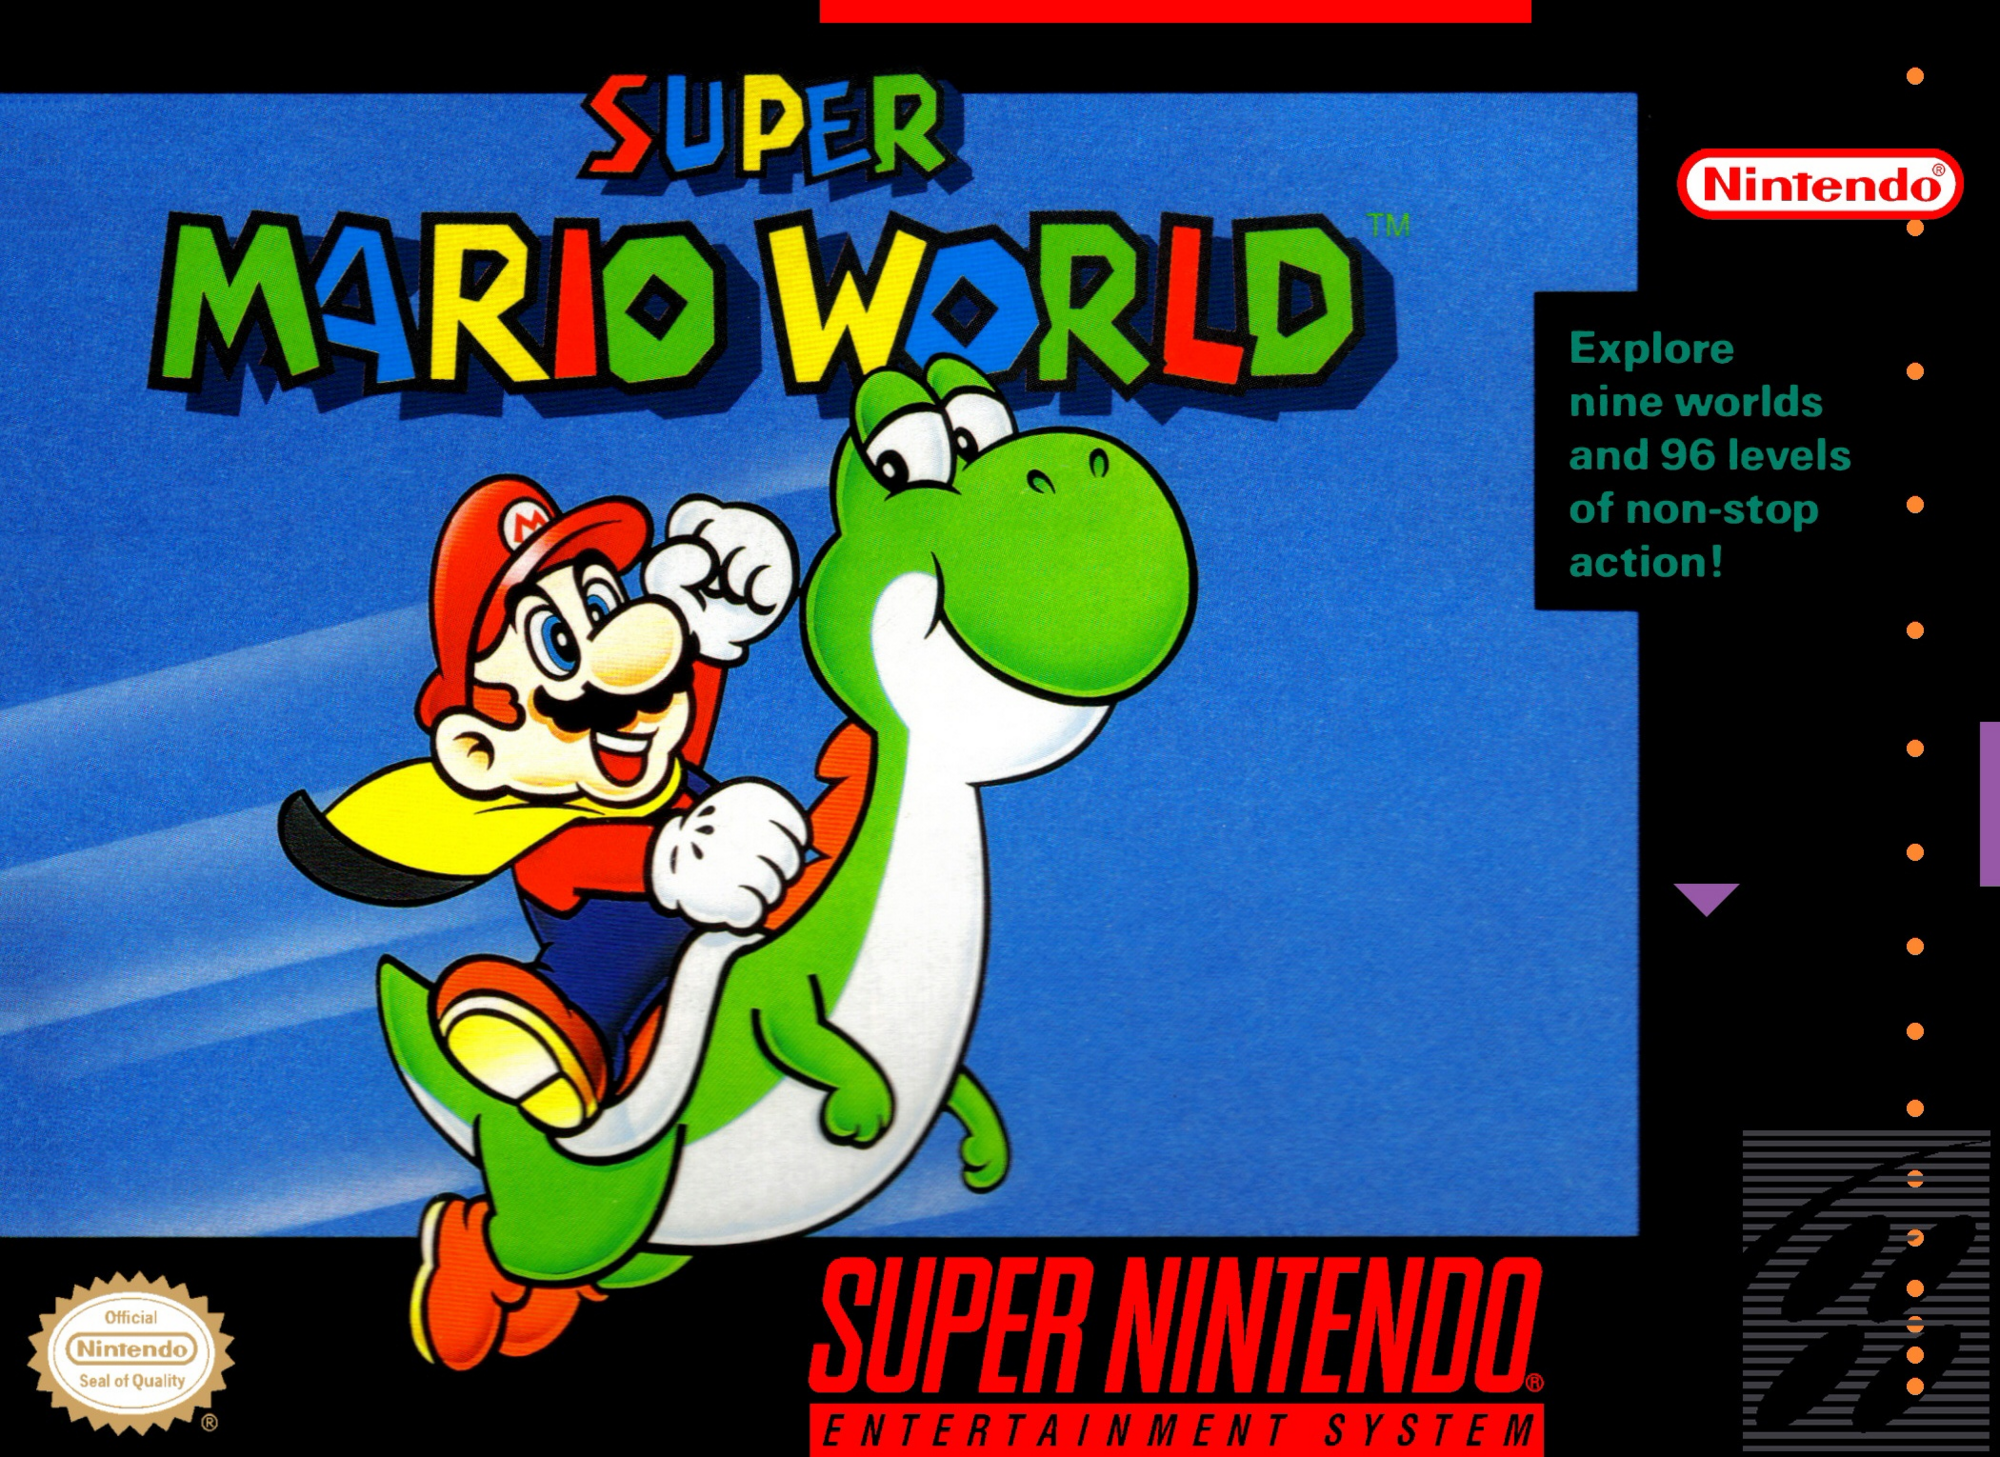 Super Mario World | Nintendo | FANDOM powered by Wikia